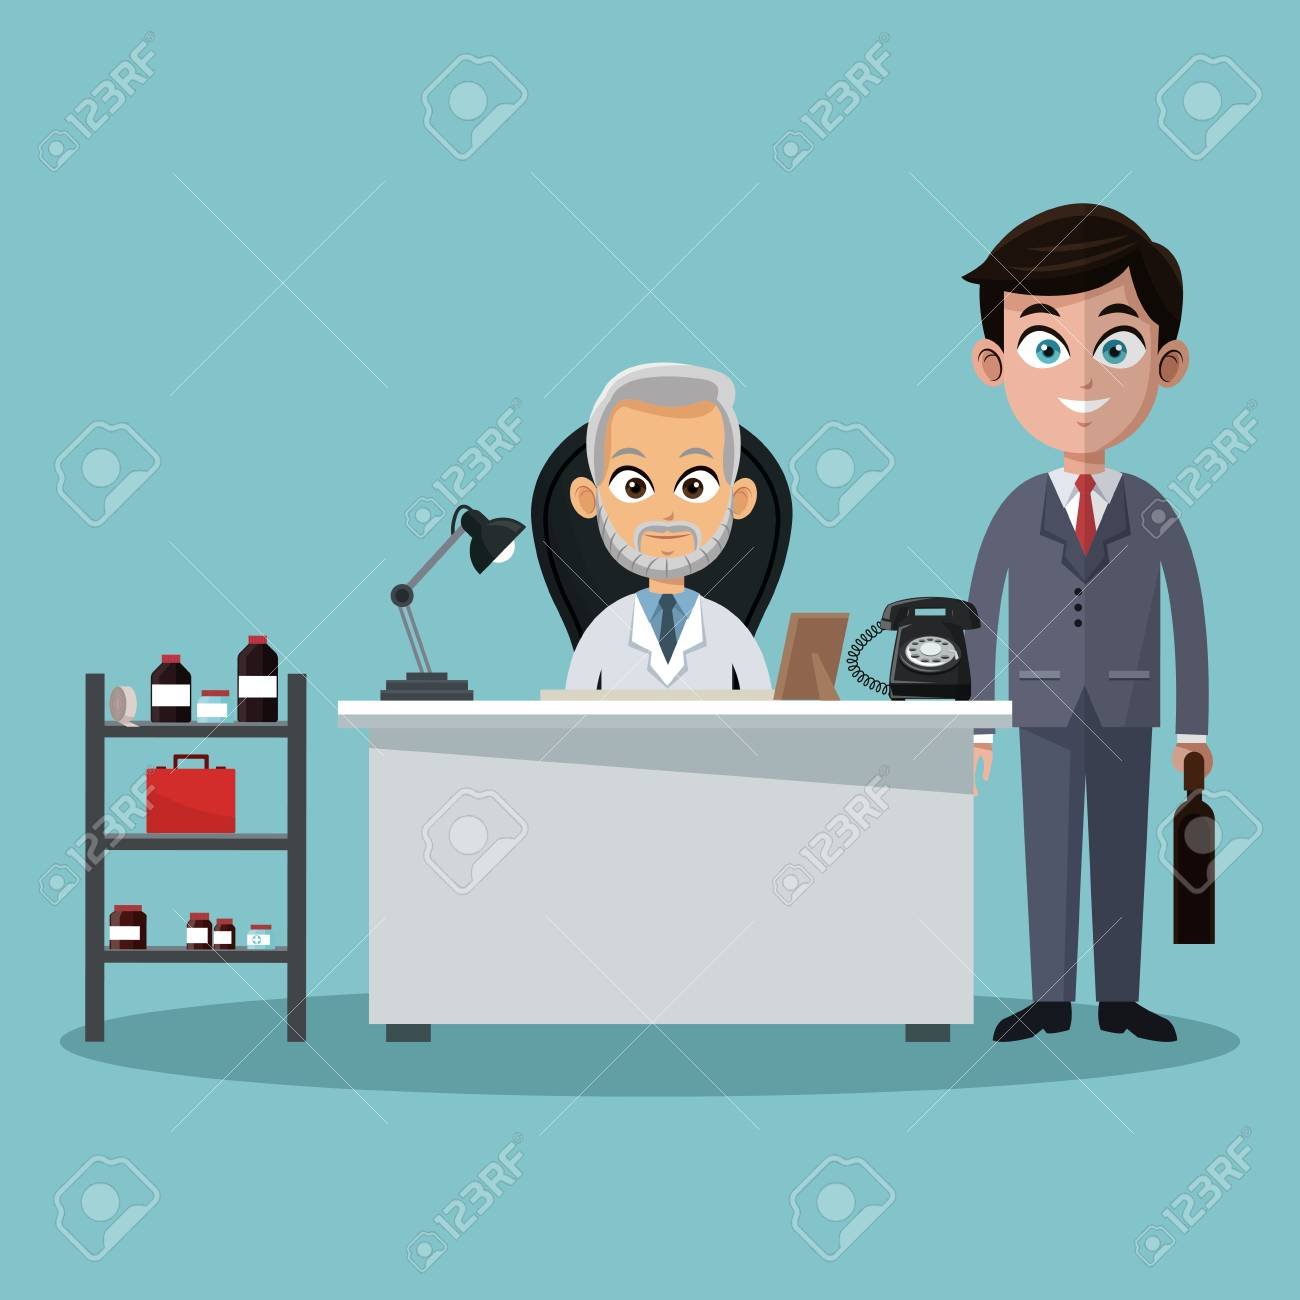 Businessman and doctor in office cartoons vector illustration graphic design - 104418631